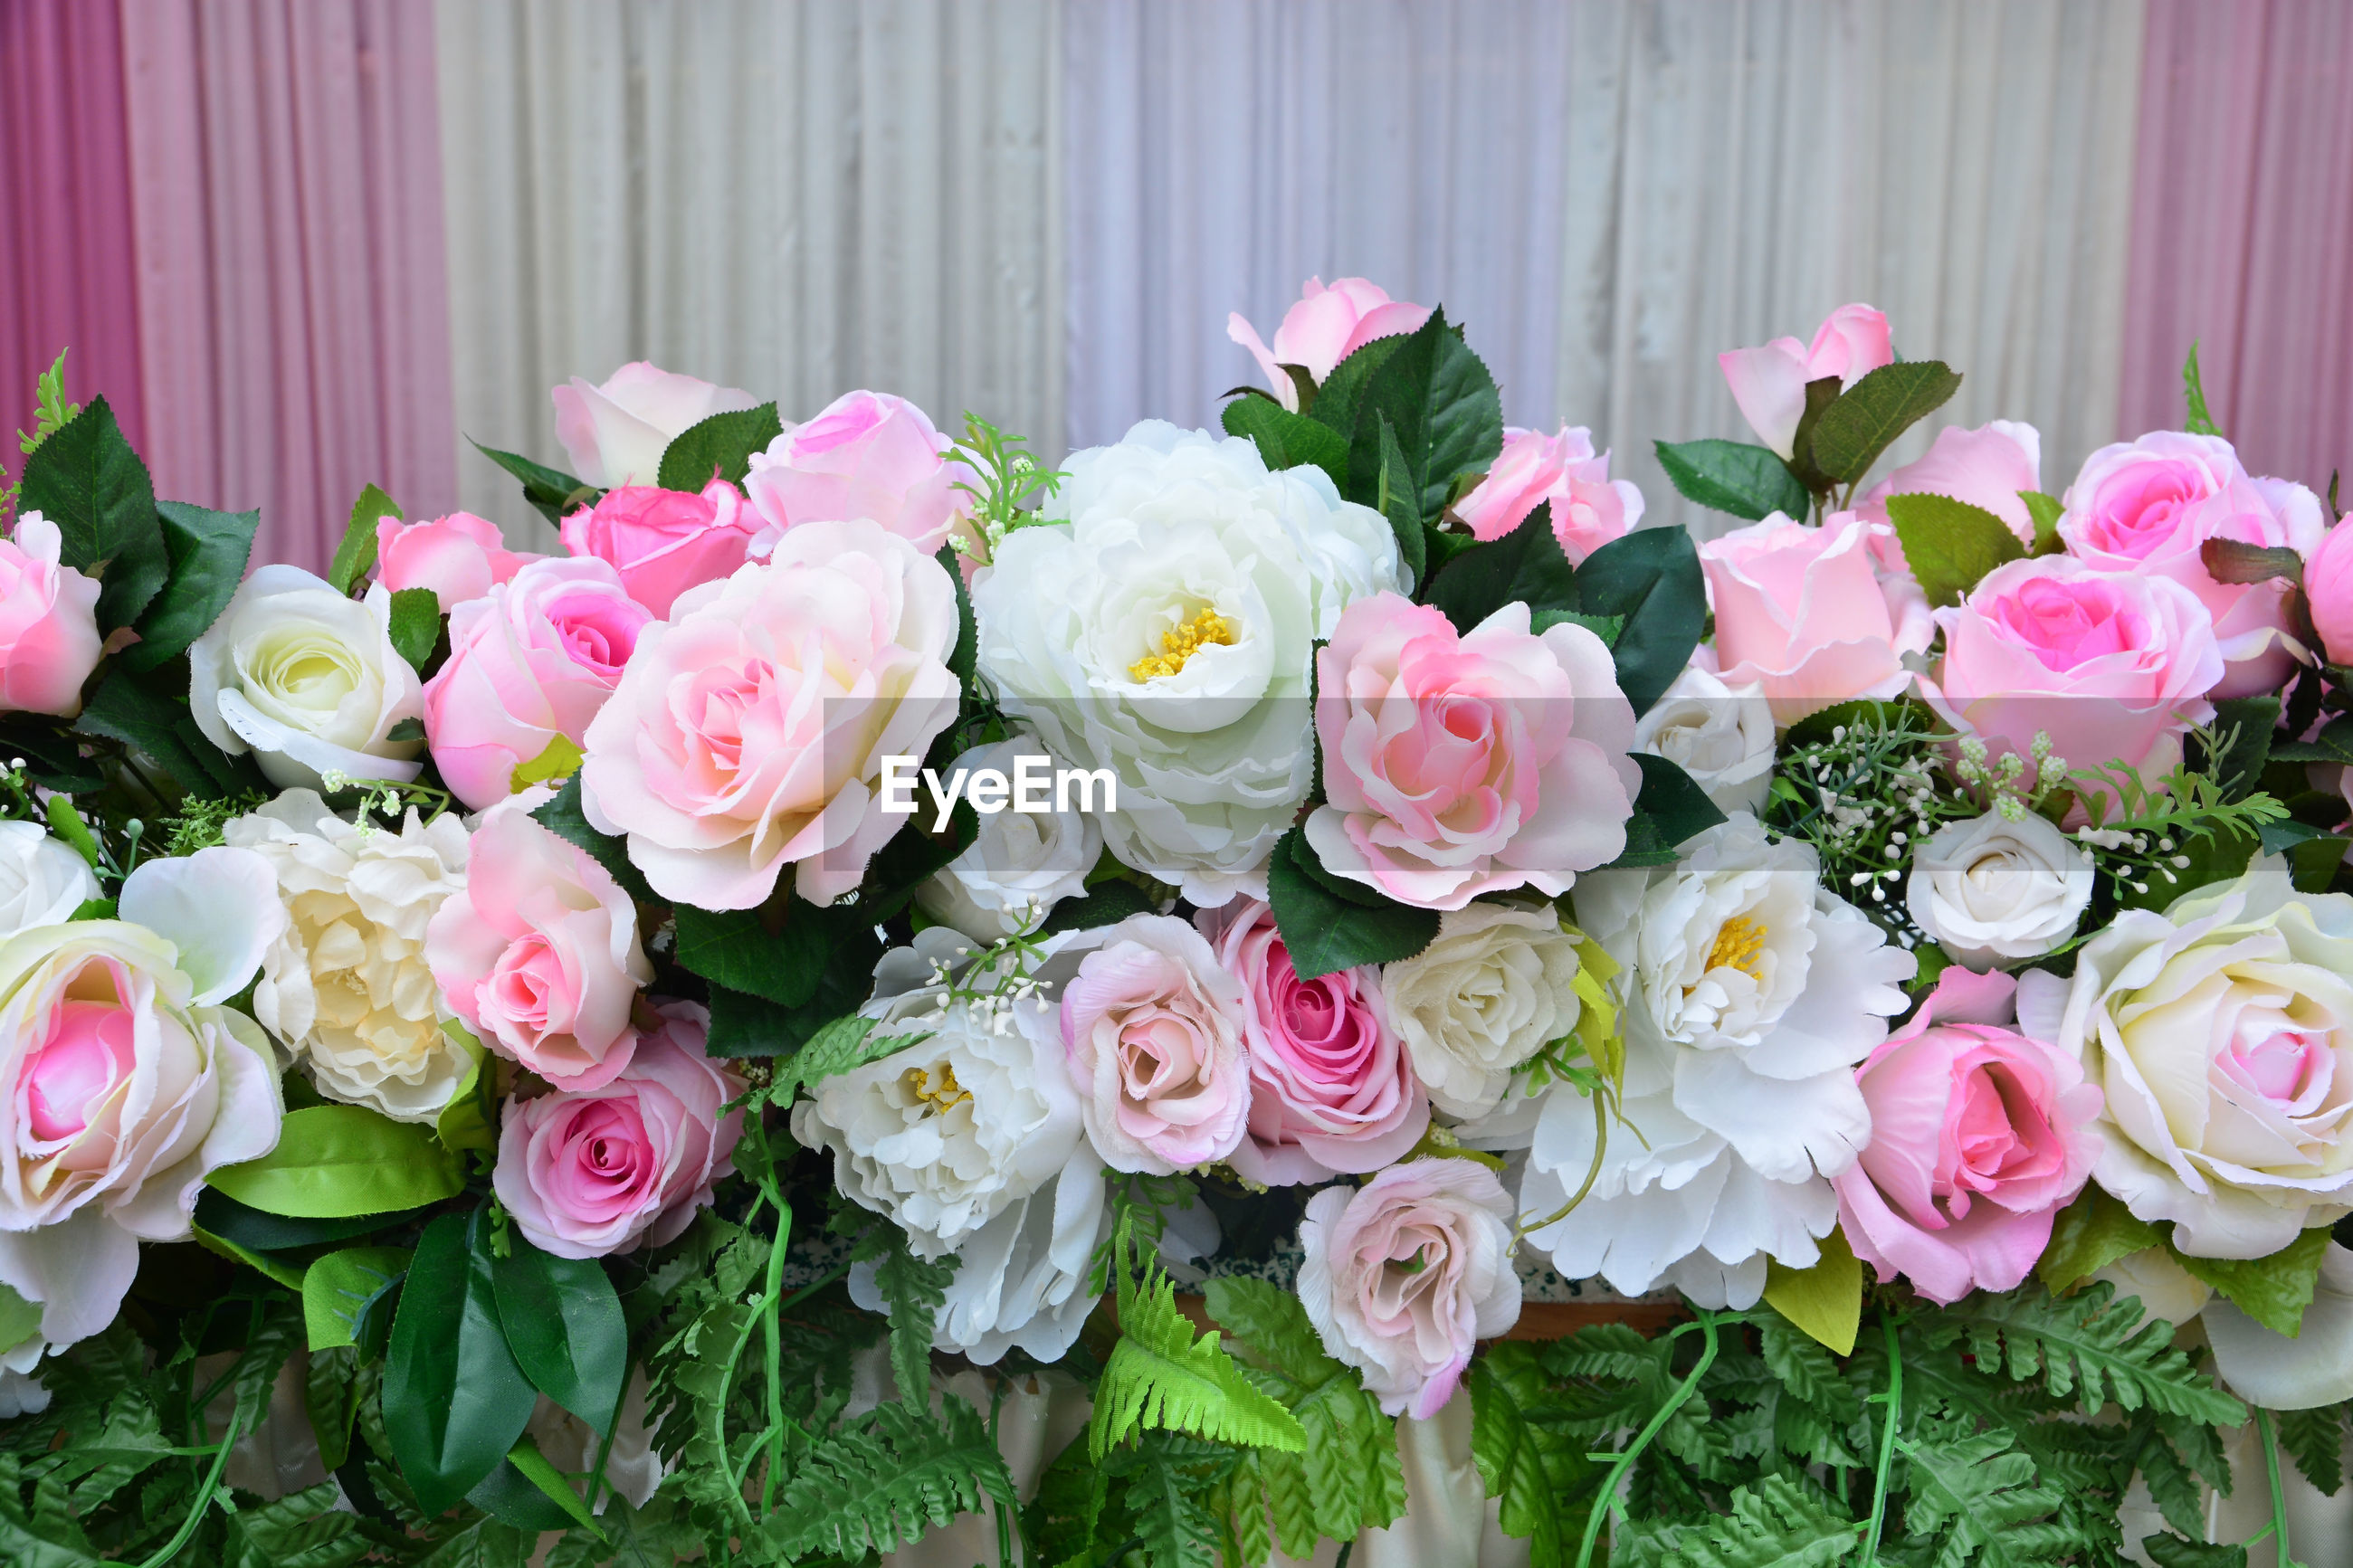 CLOSE-UP OF PINK ROSES ON BOUQUET